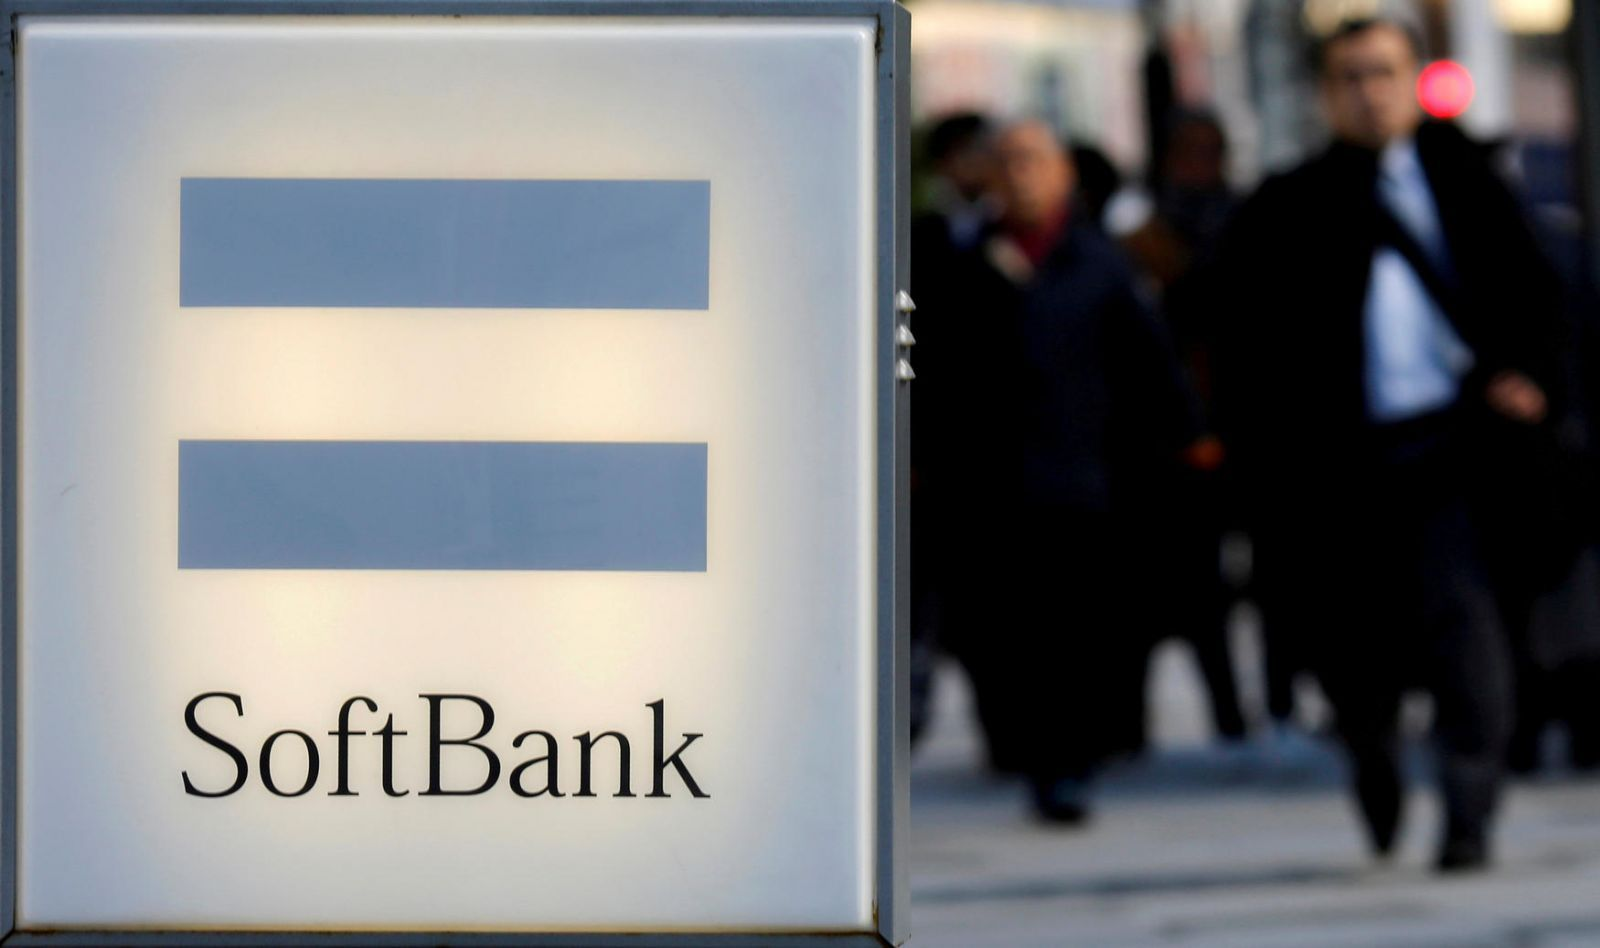 softbank to buy fortress investment group for us 3 3b banking softbank to buy fortress investment group for us 3 3b